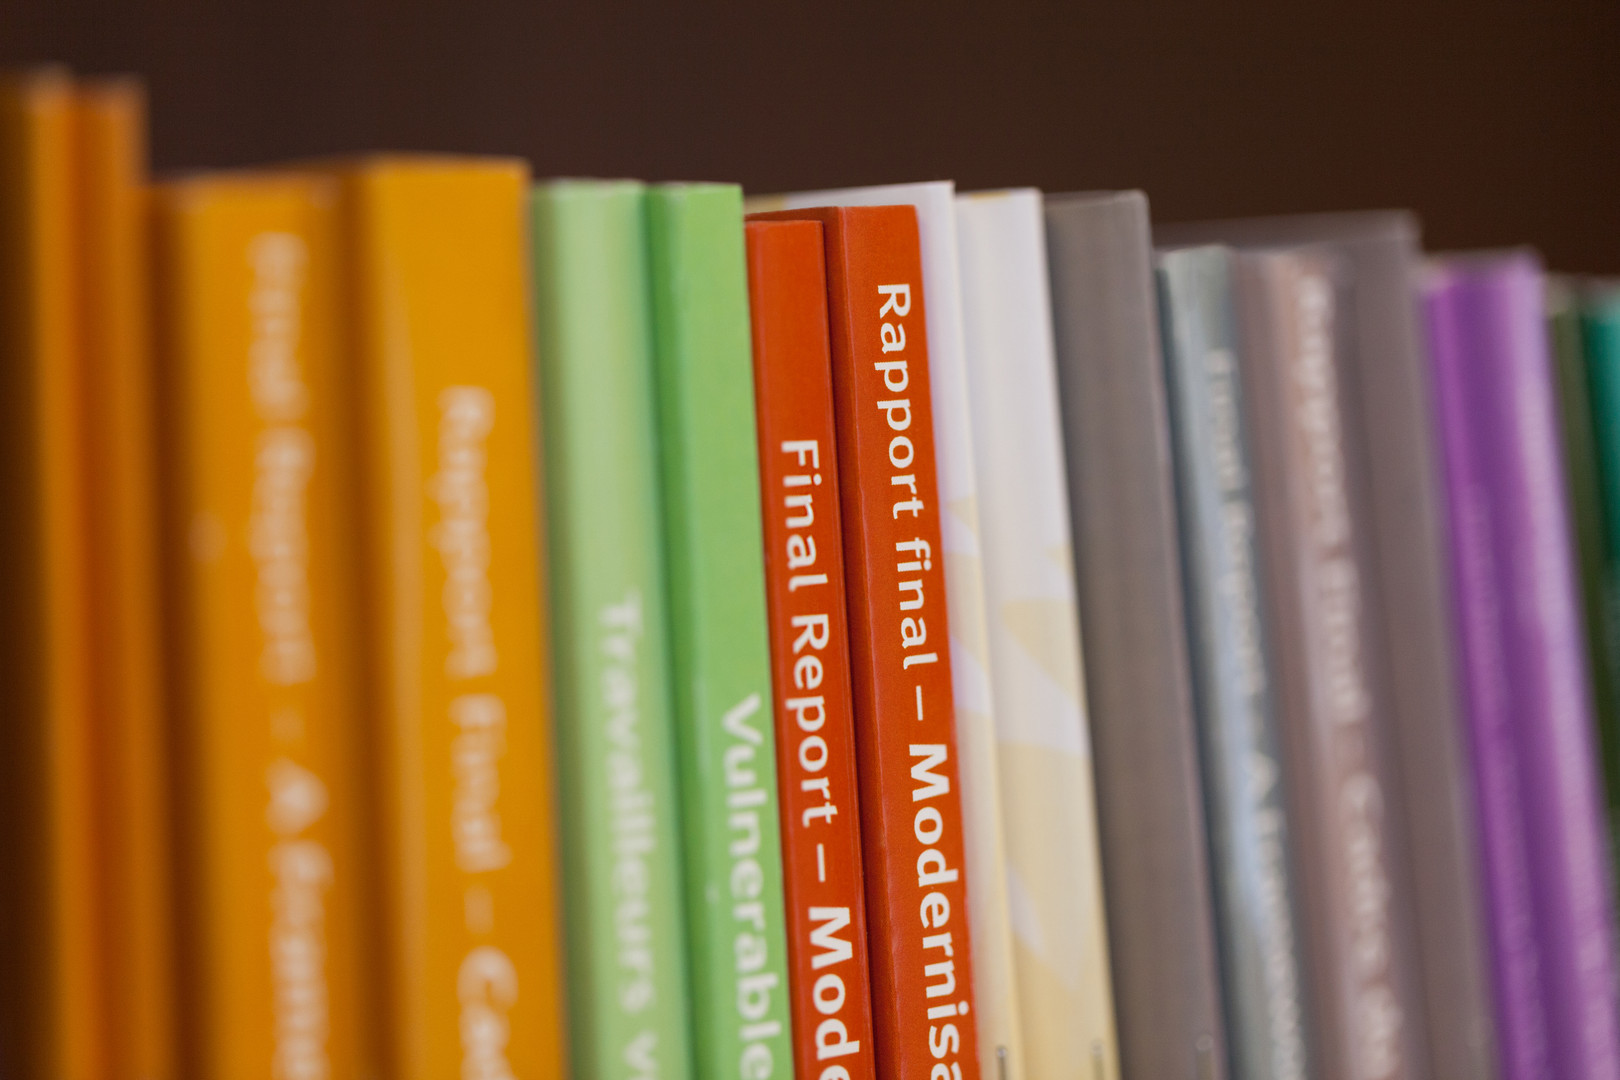 Law Commission of Ontario York University Library Stacks - Corporate Photography